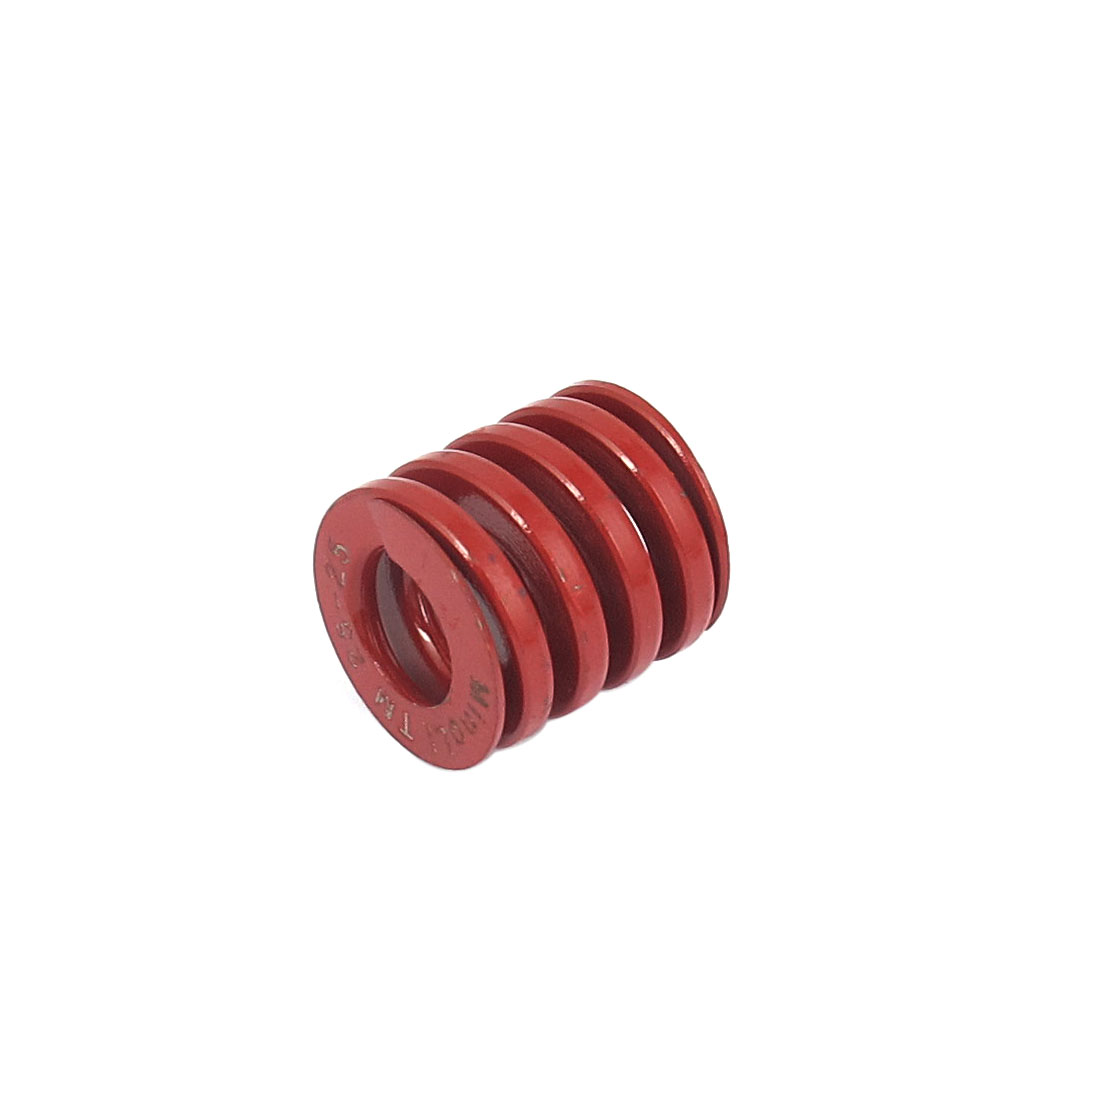 25mmx25mm Chromium Alloy Steel Medium Load Die Spring Red